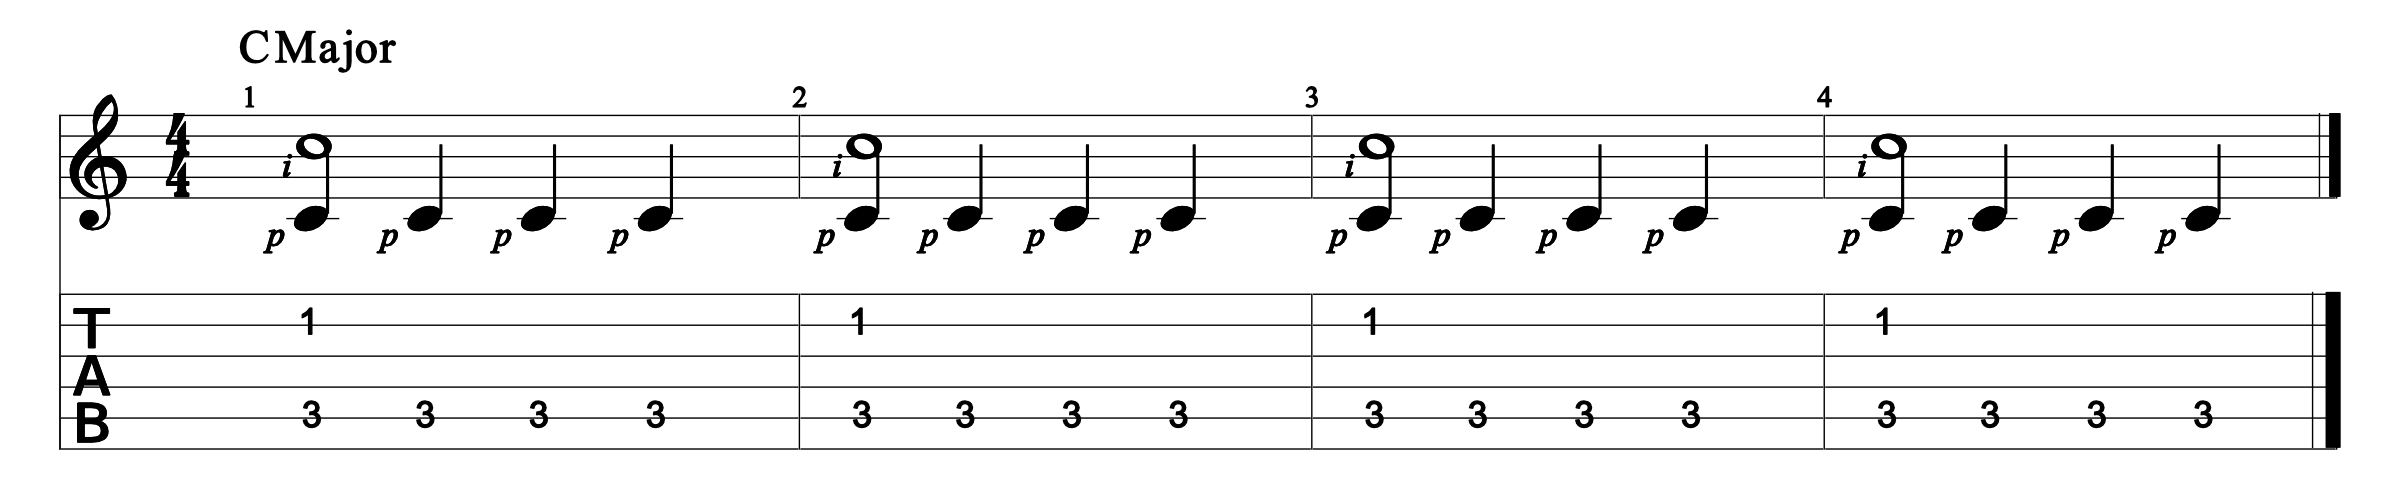 Constant Bass Exercise 2